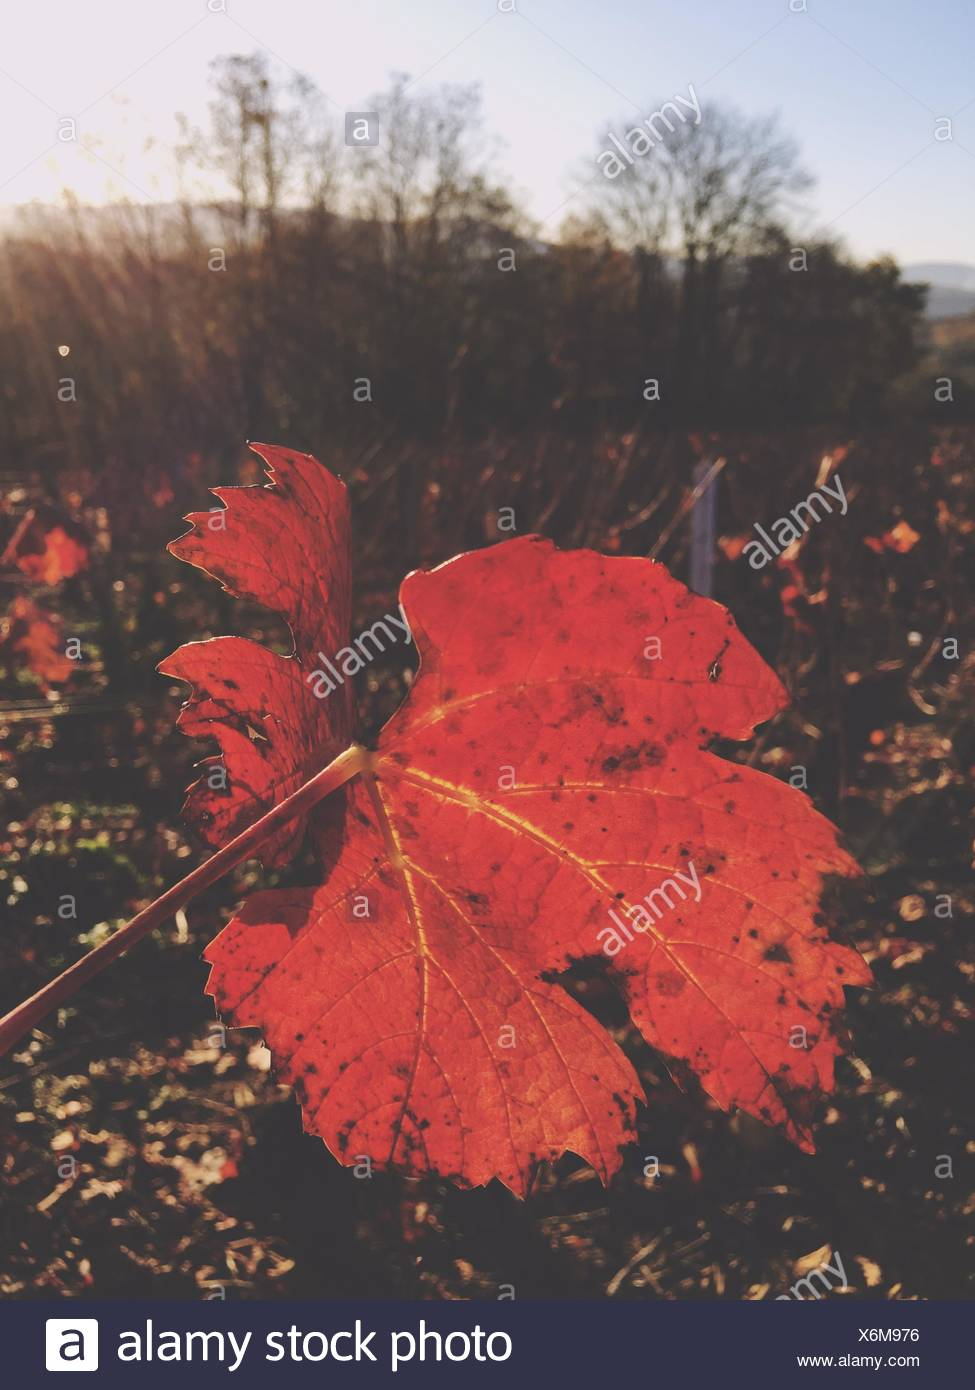 Close-Up Of Leaves Growing On Field During Autumn - Stock Image